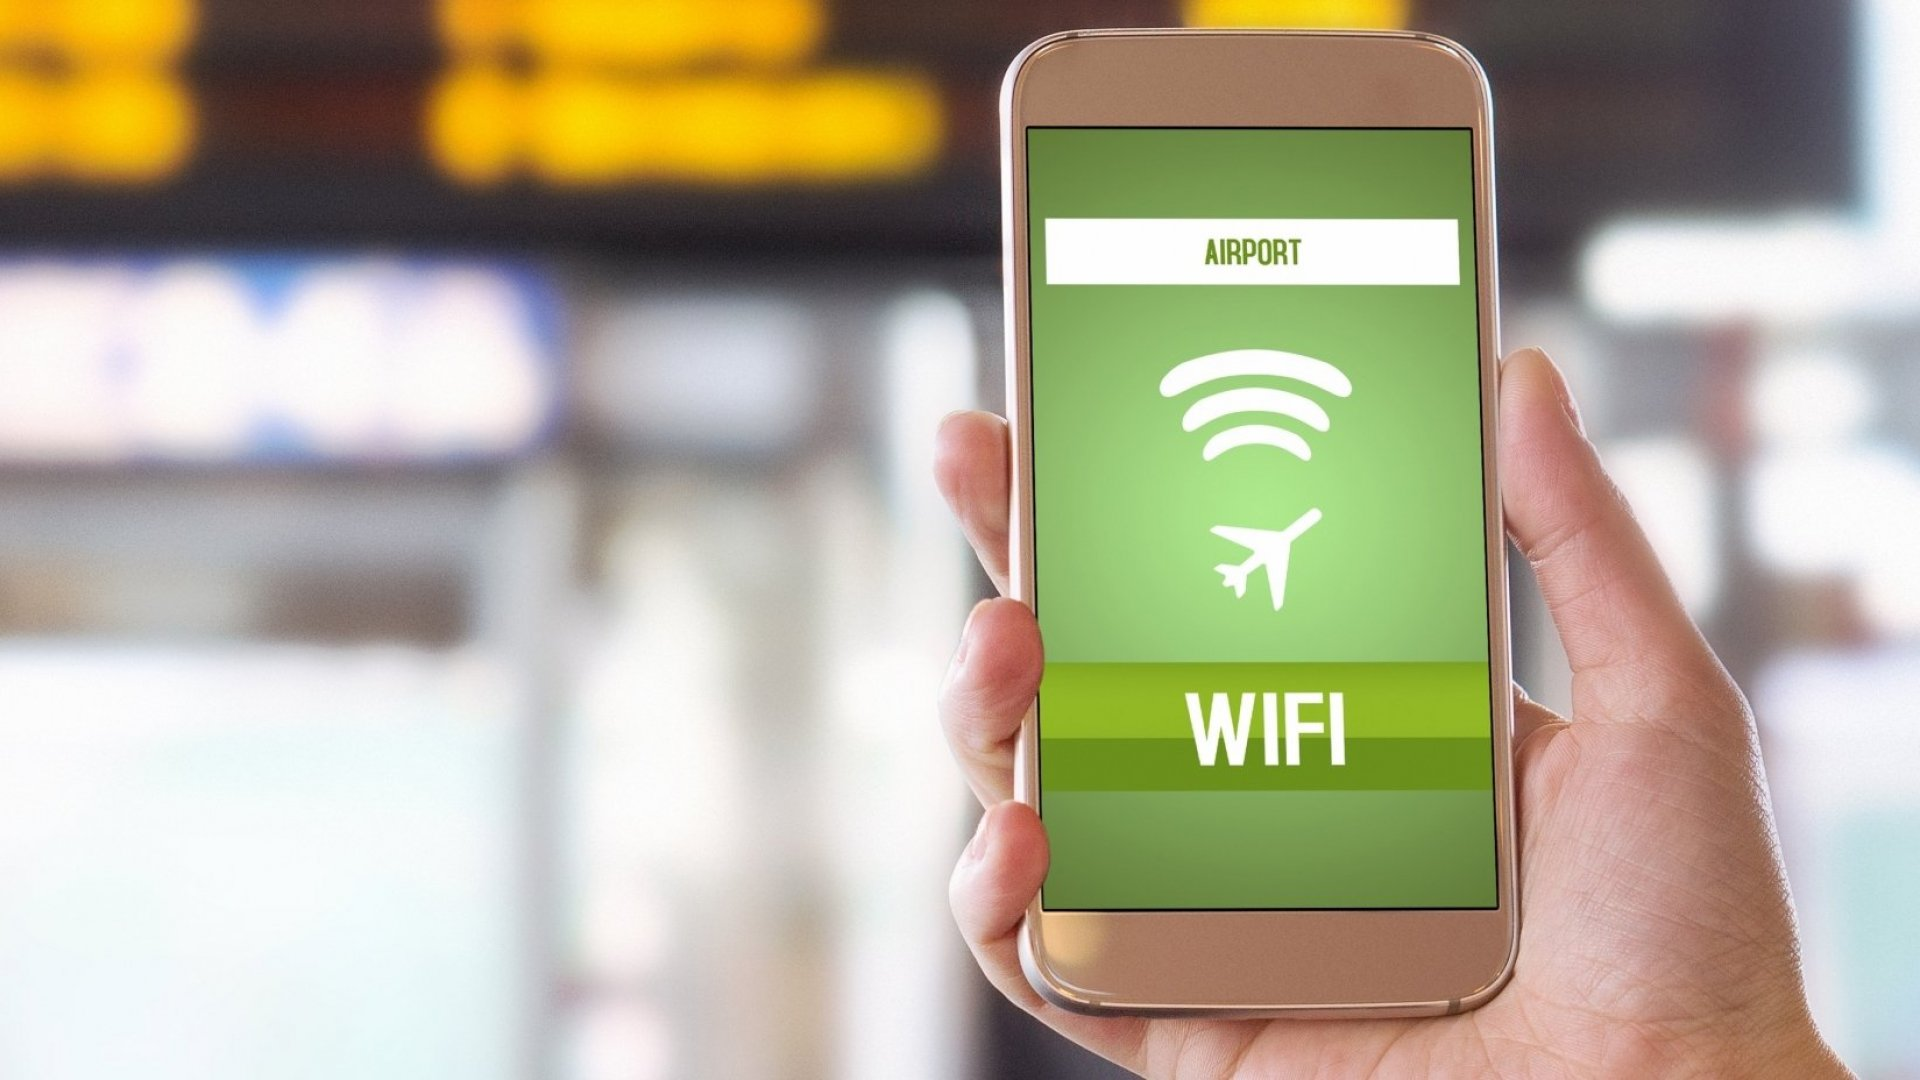 How to Stay Safe While Connected to Public Wi-Fi